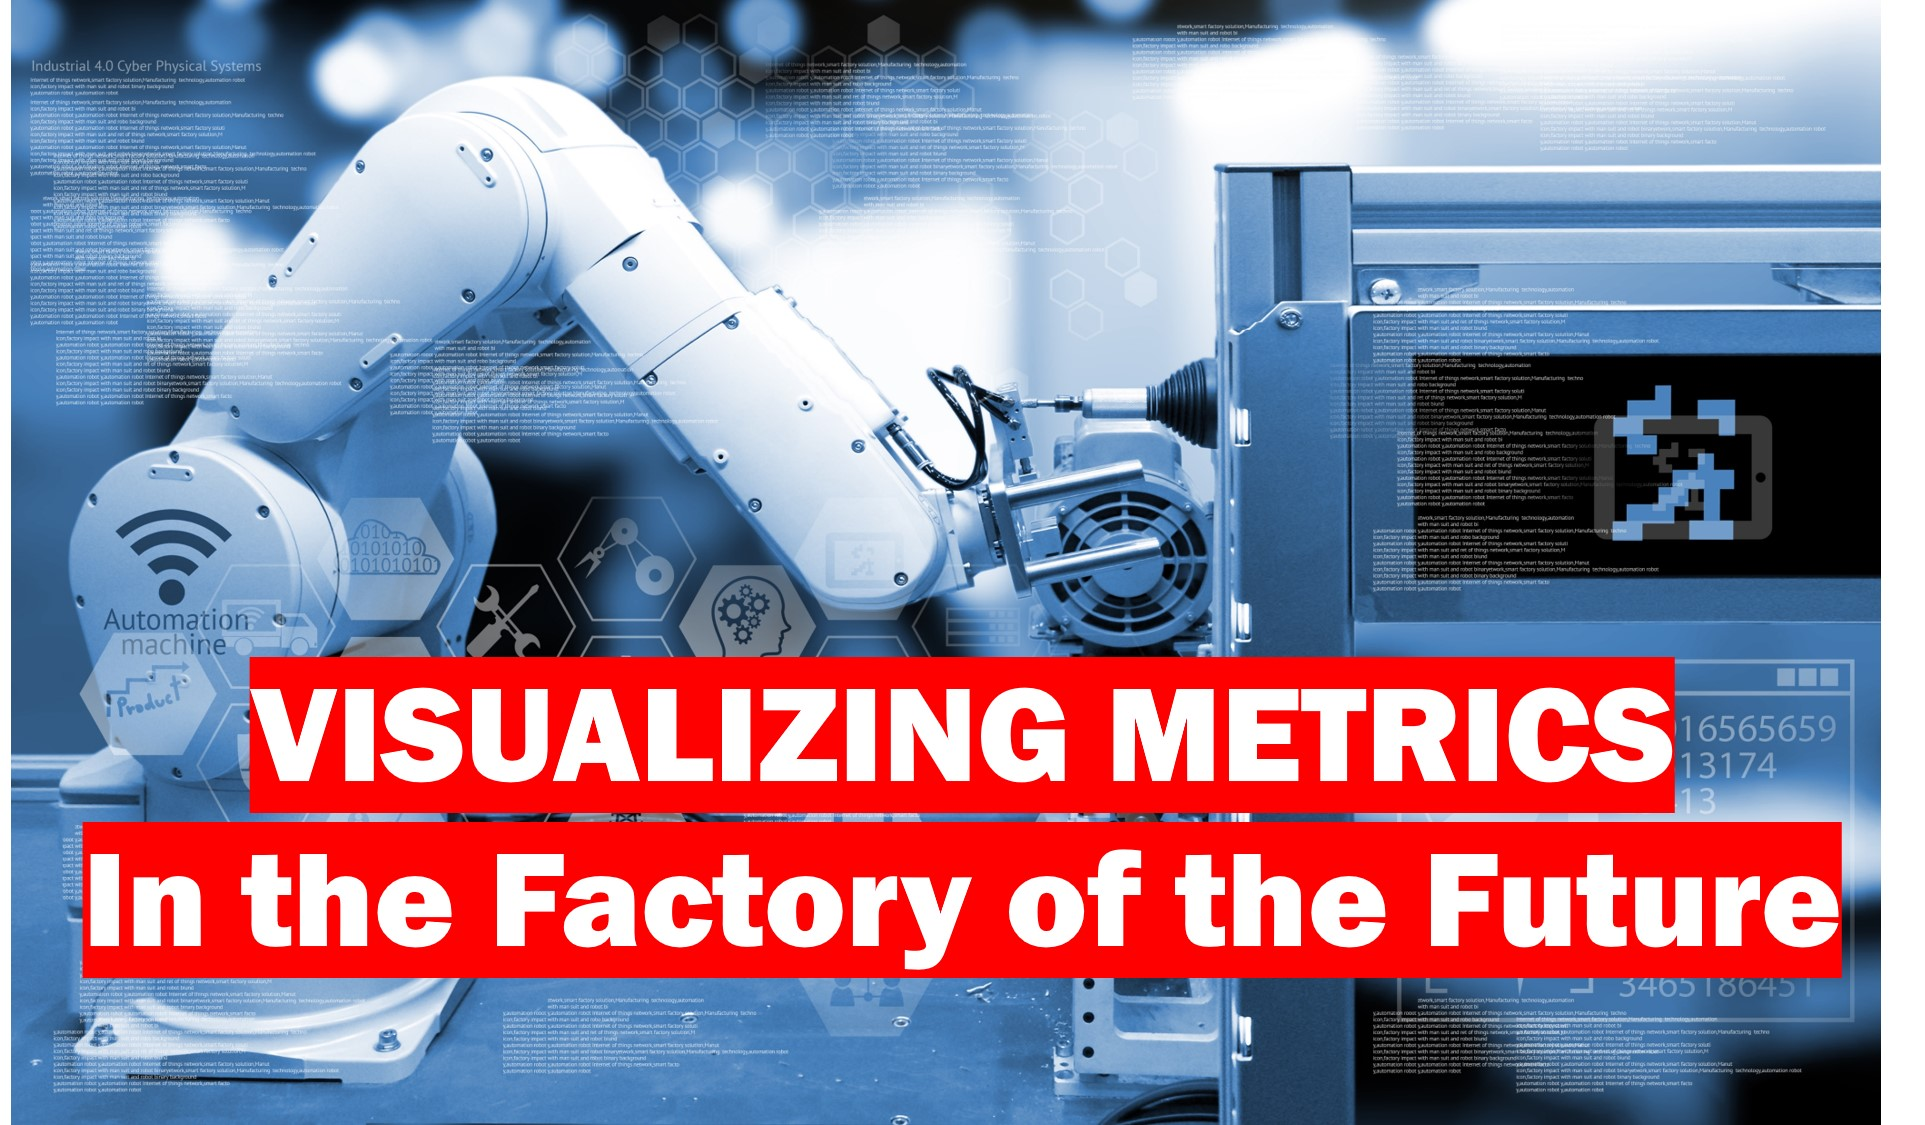 Visualizing metrics in the factory of the future